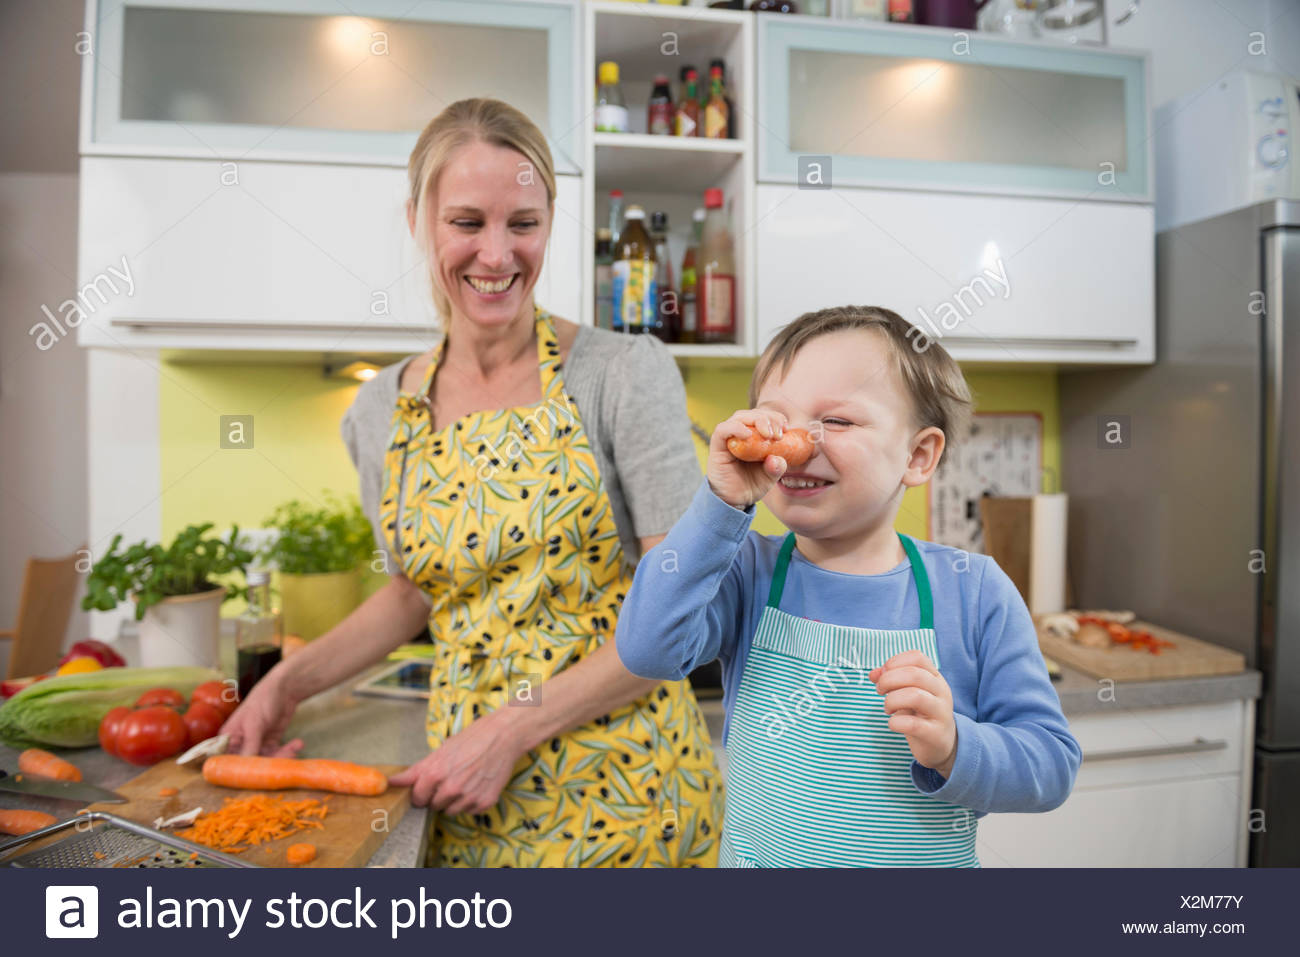 Boy fool around with carrots while mother is laughing - Stock Image